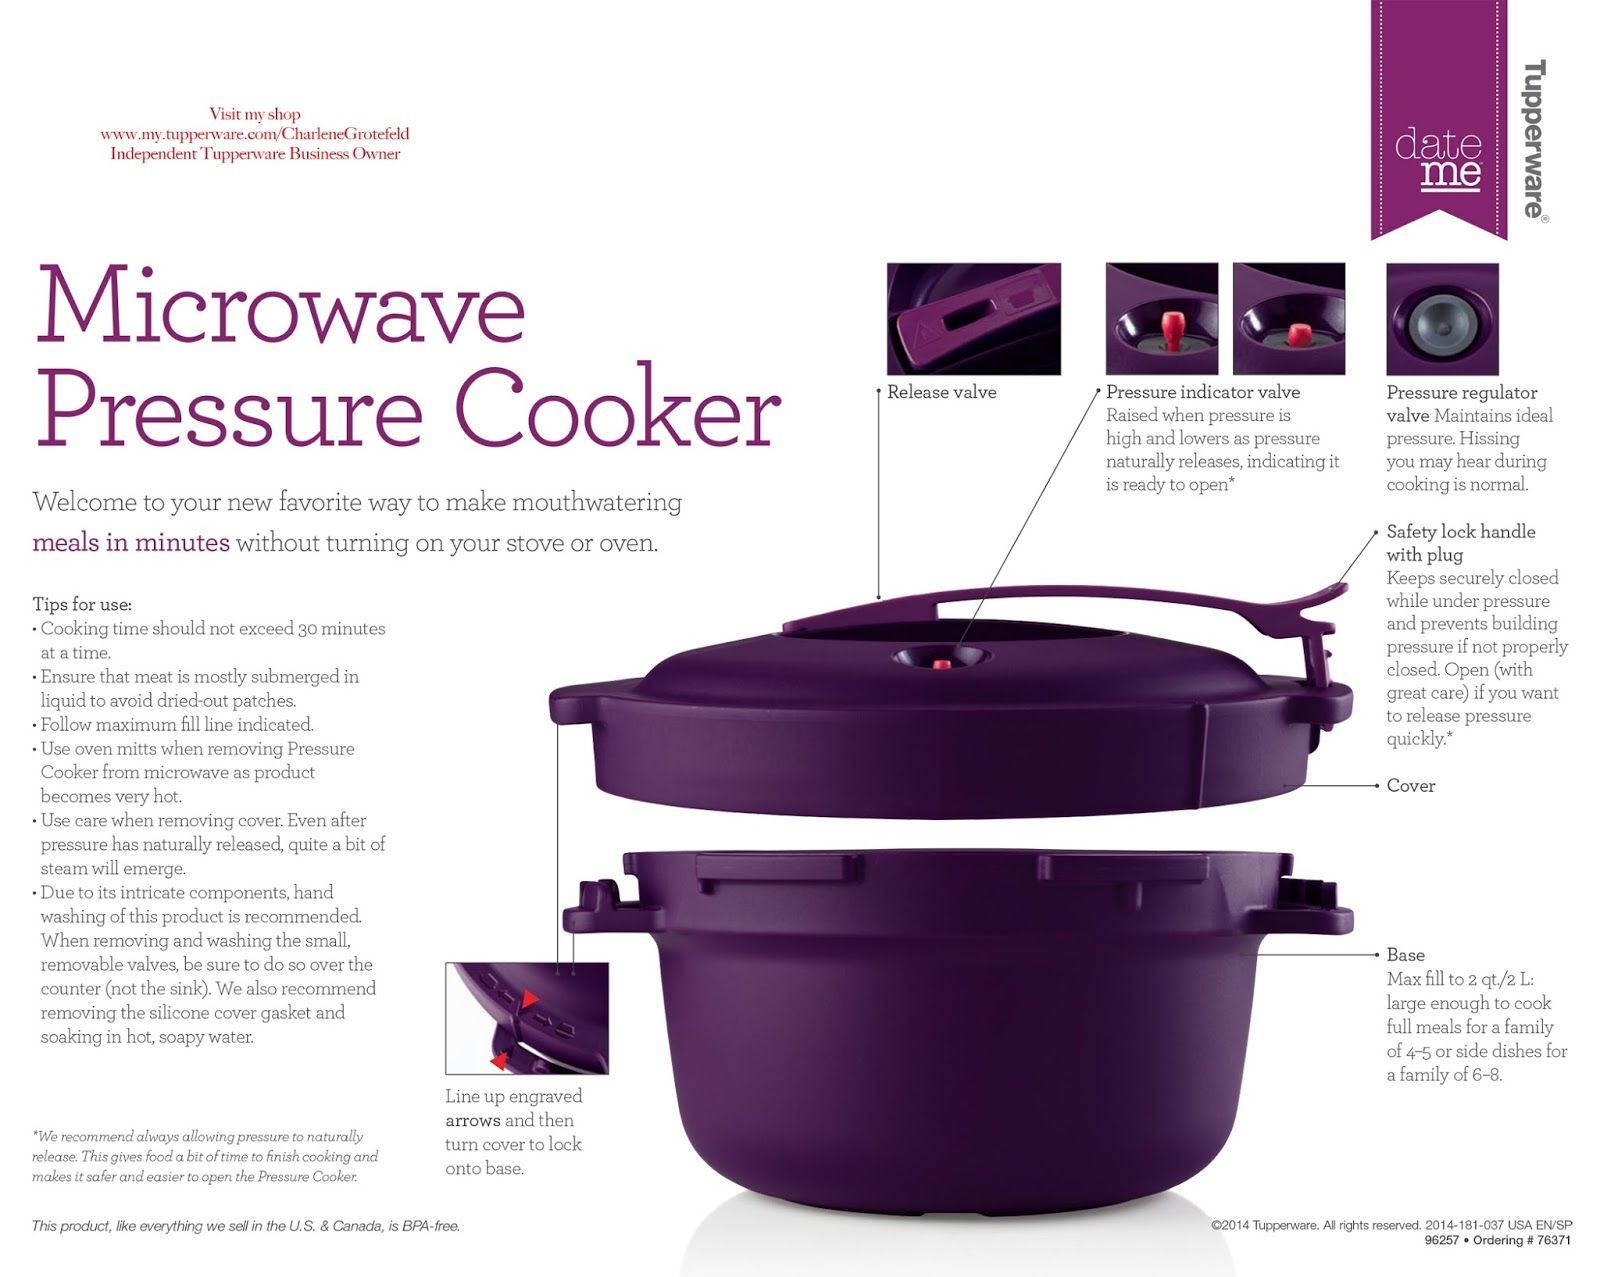 bpa free kitchen tupperware microwave pressure cooker explained and recipes projects to try. Black Bedroom Furniture Sets. Home Design Ideas